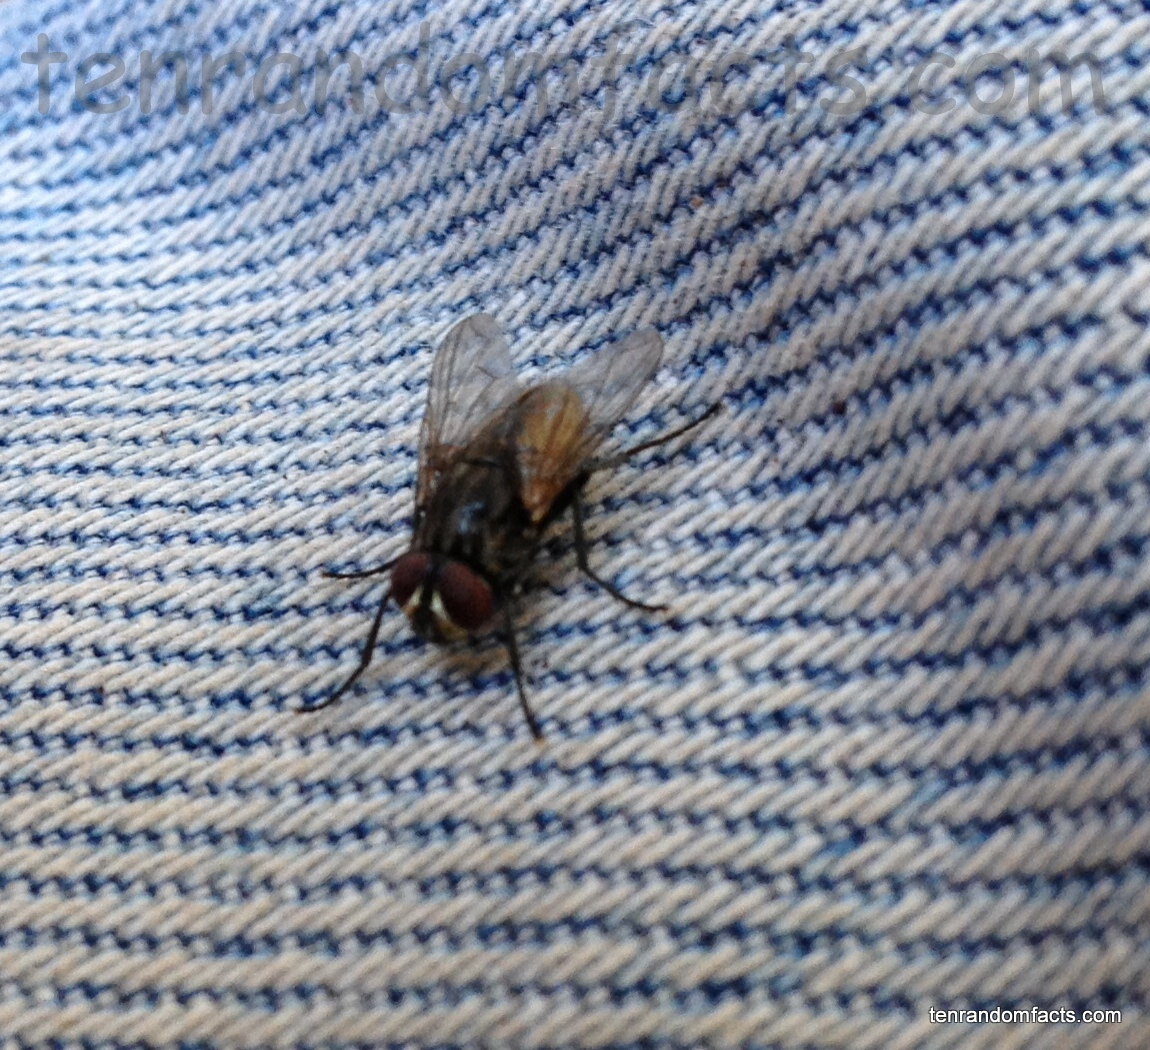 Housefly, Small, Insect, Fly, Sitting, Jeans, Pants, Ten Random Facts, Australia